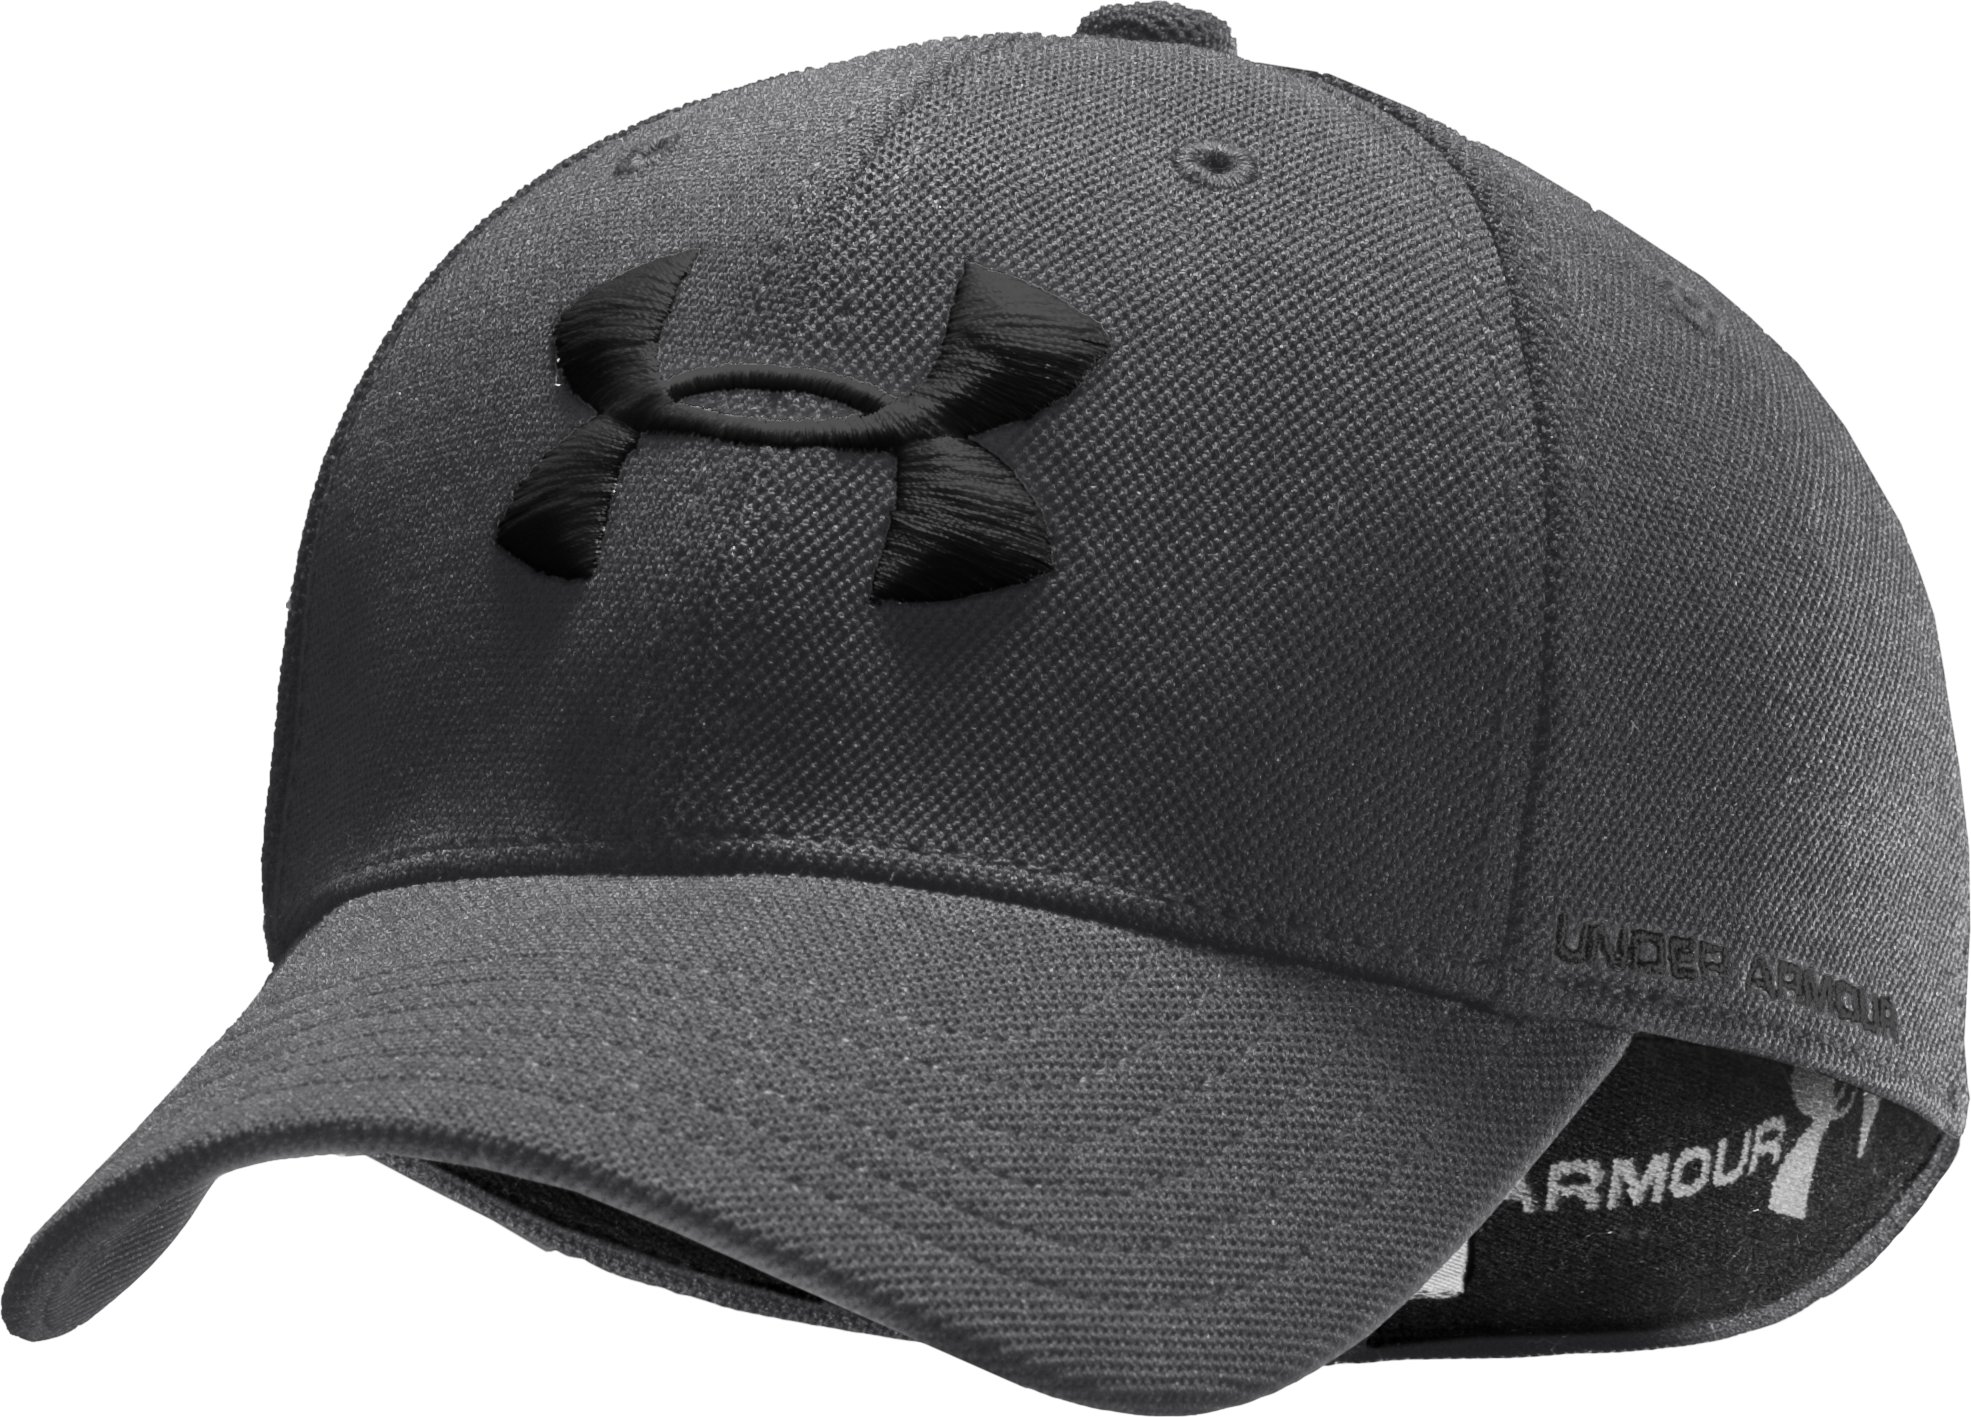 Boys' Armour® Stretch Fit Cap, Graphite